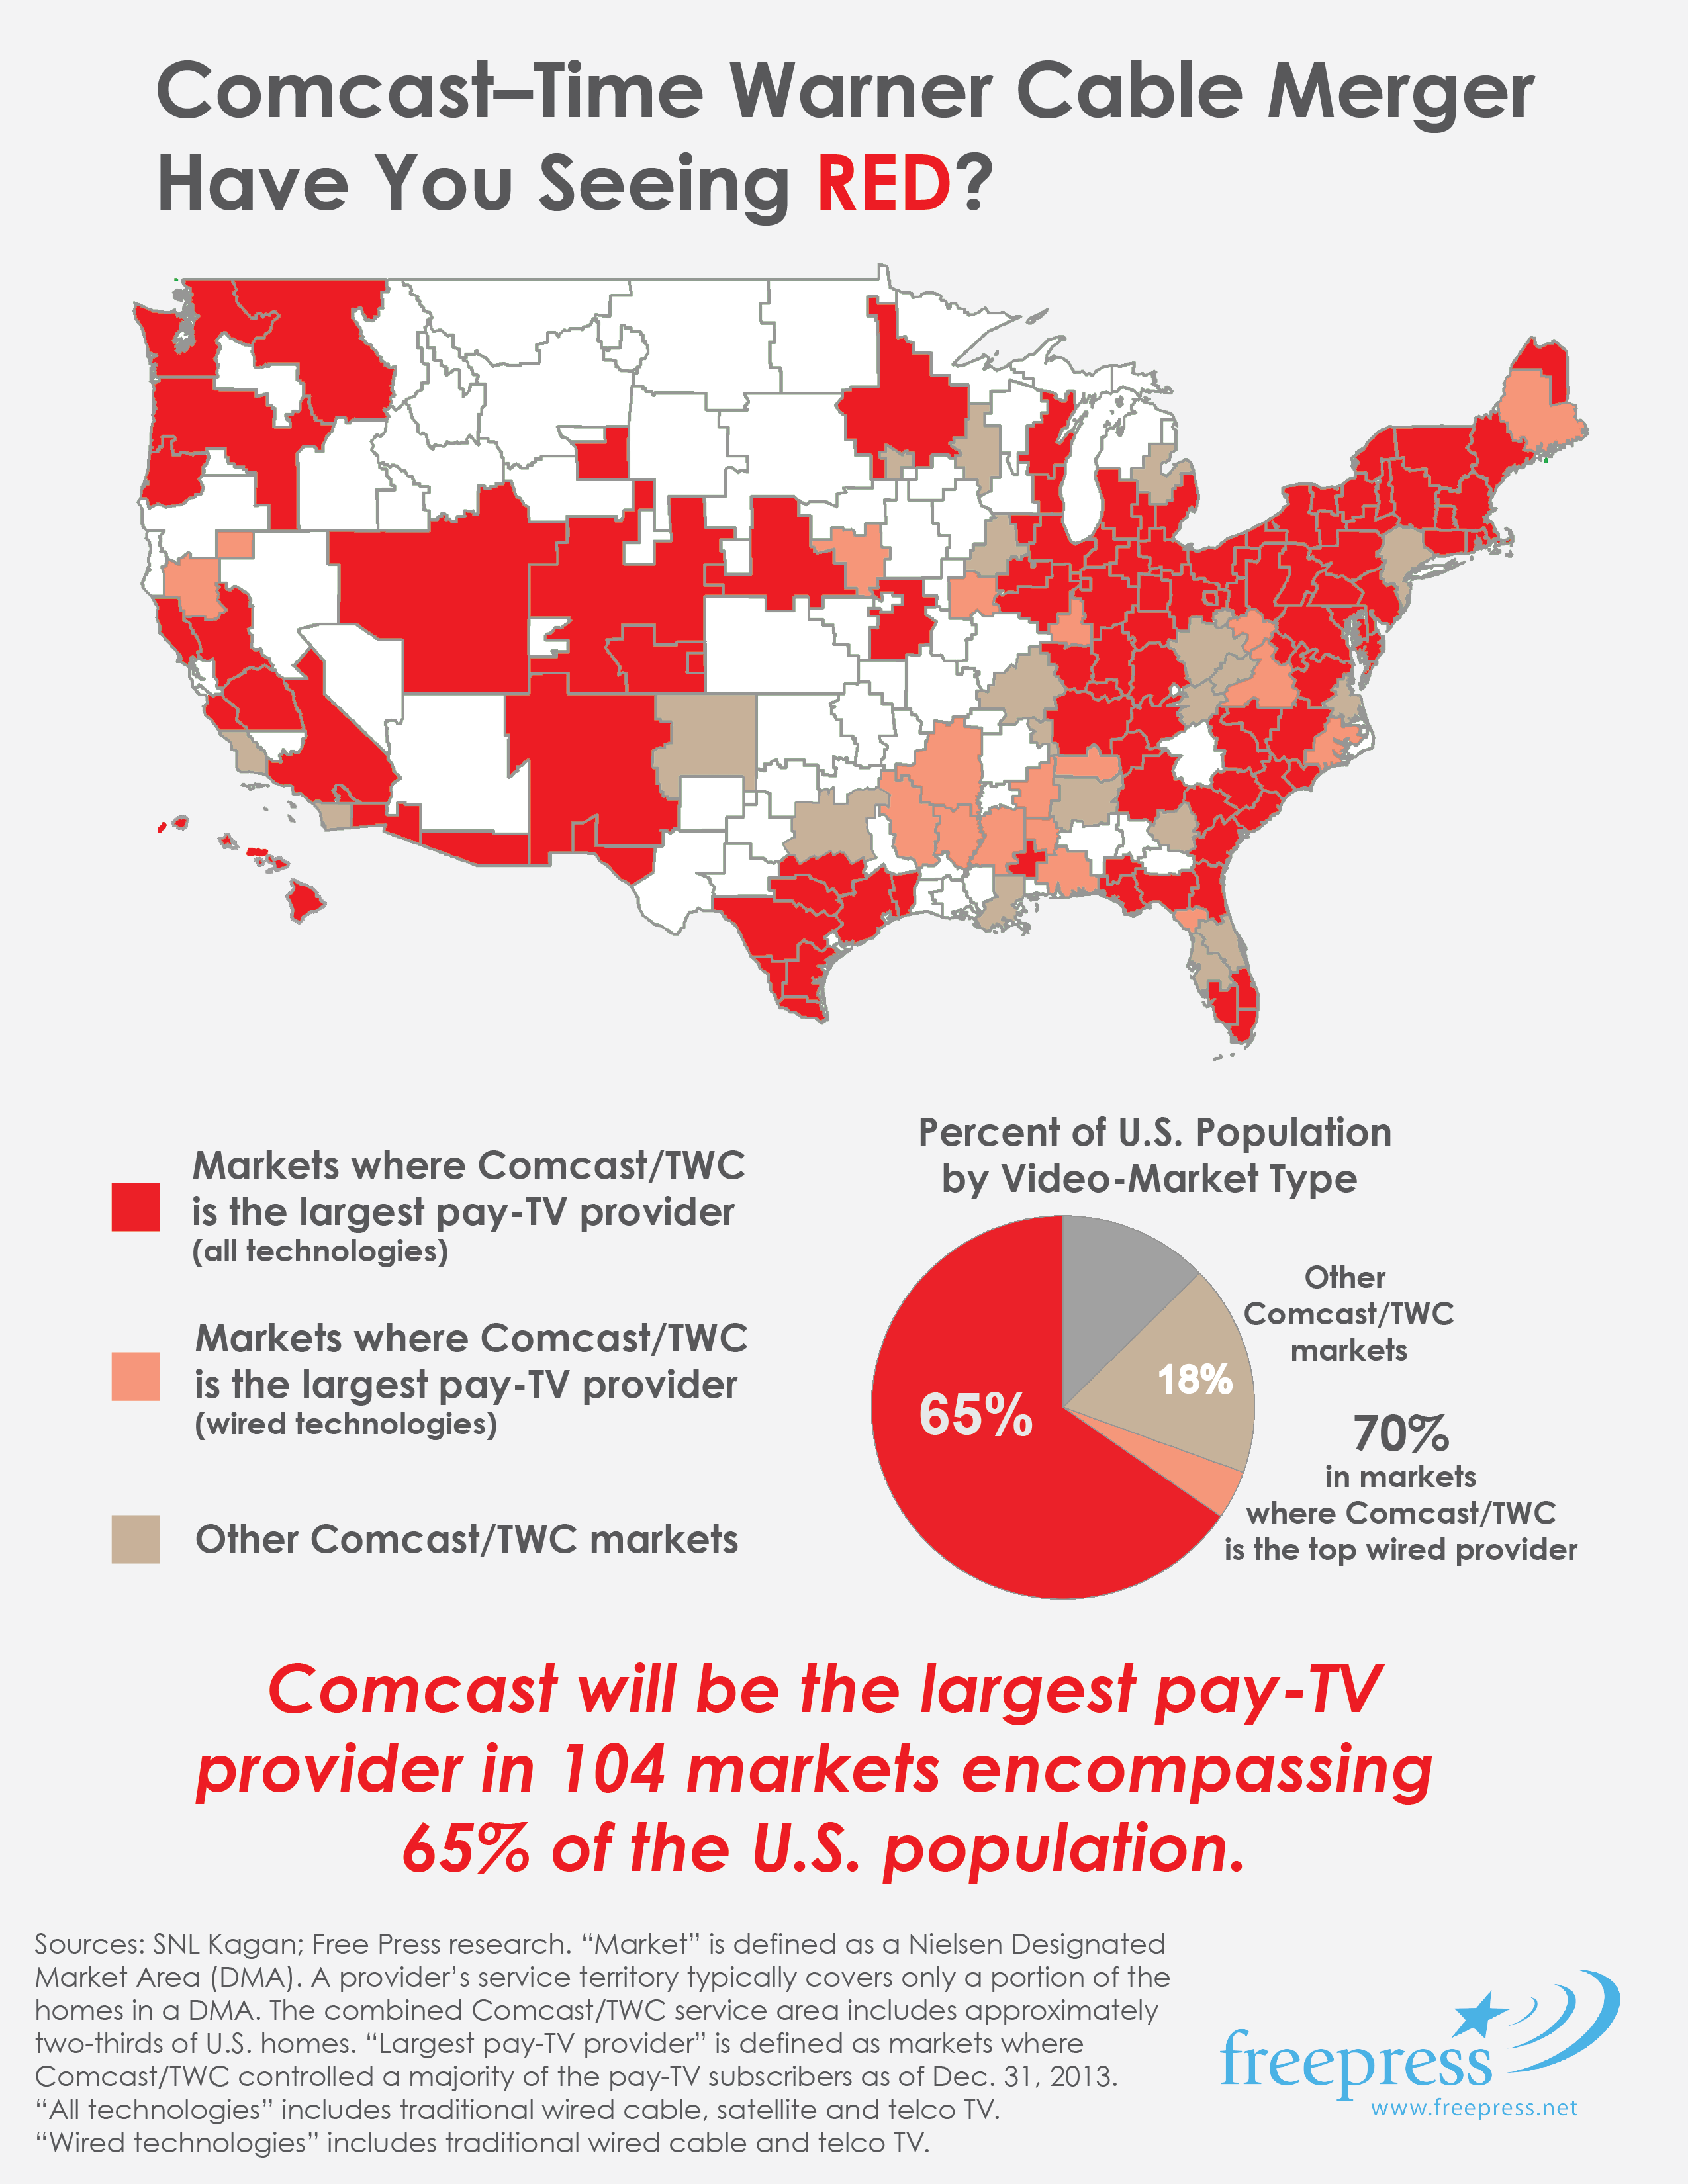 Comcast market share